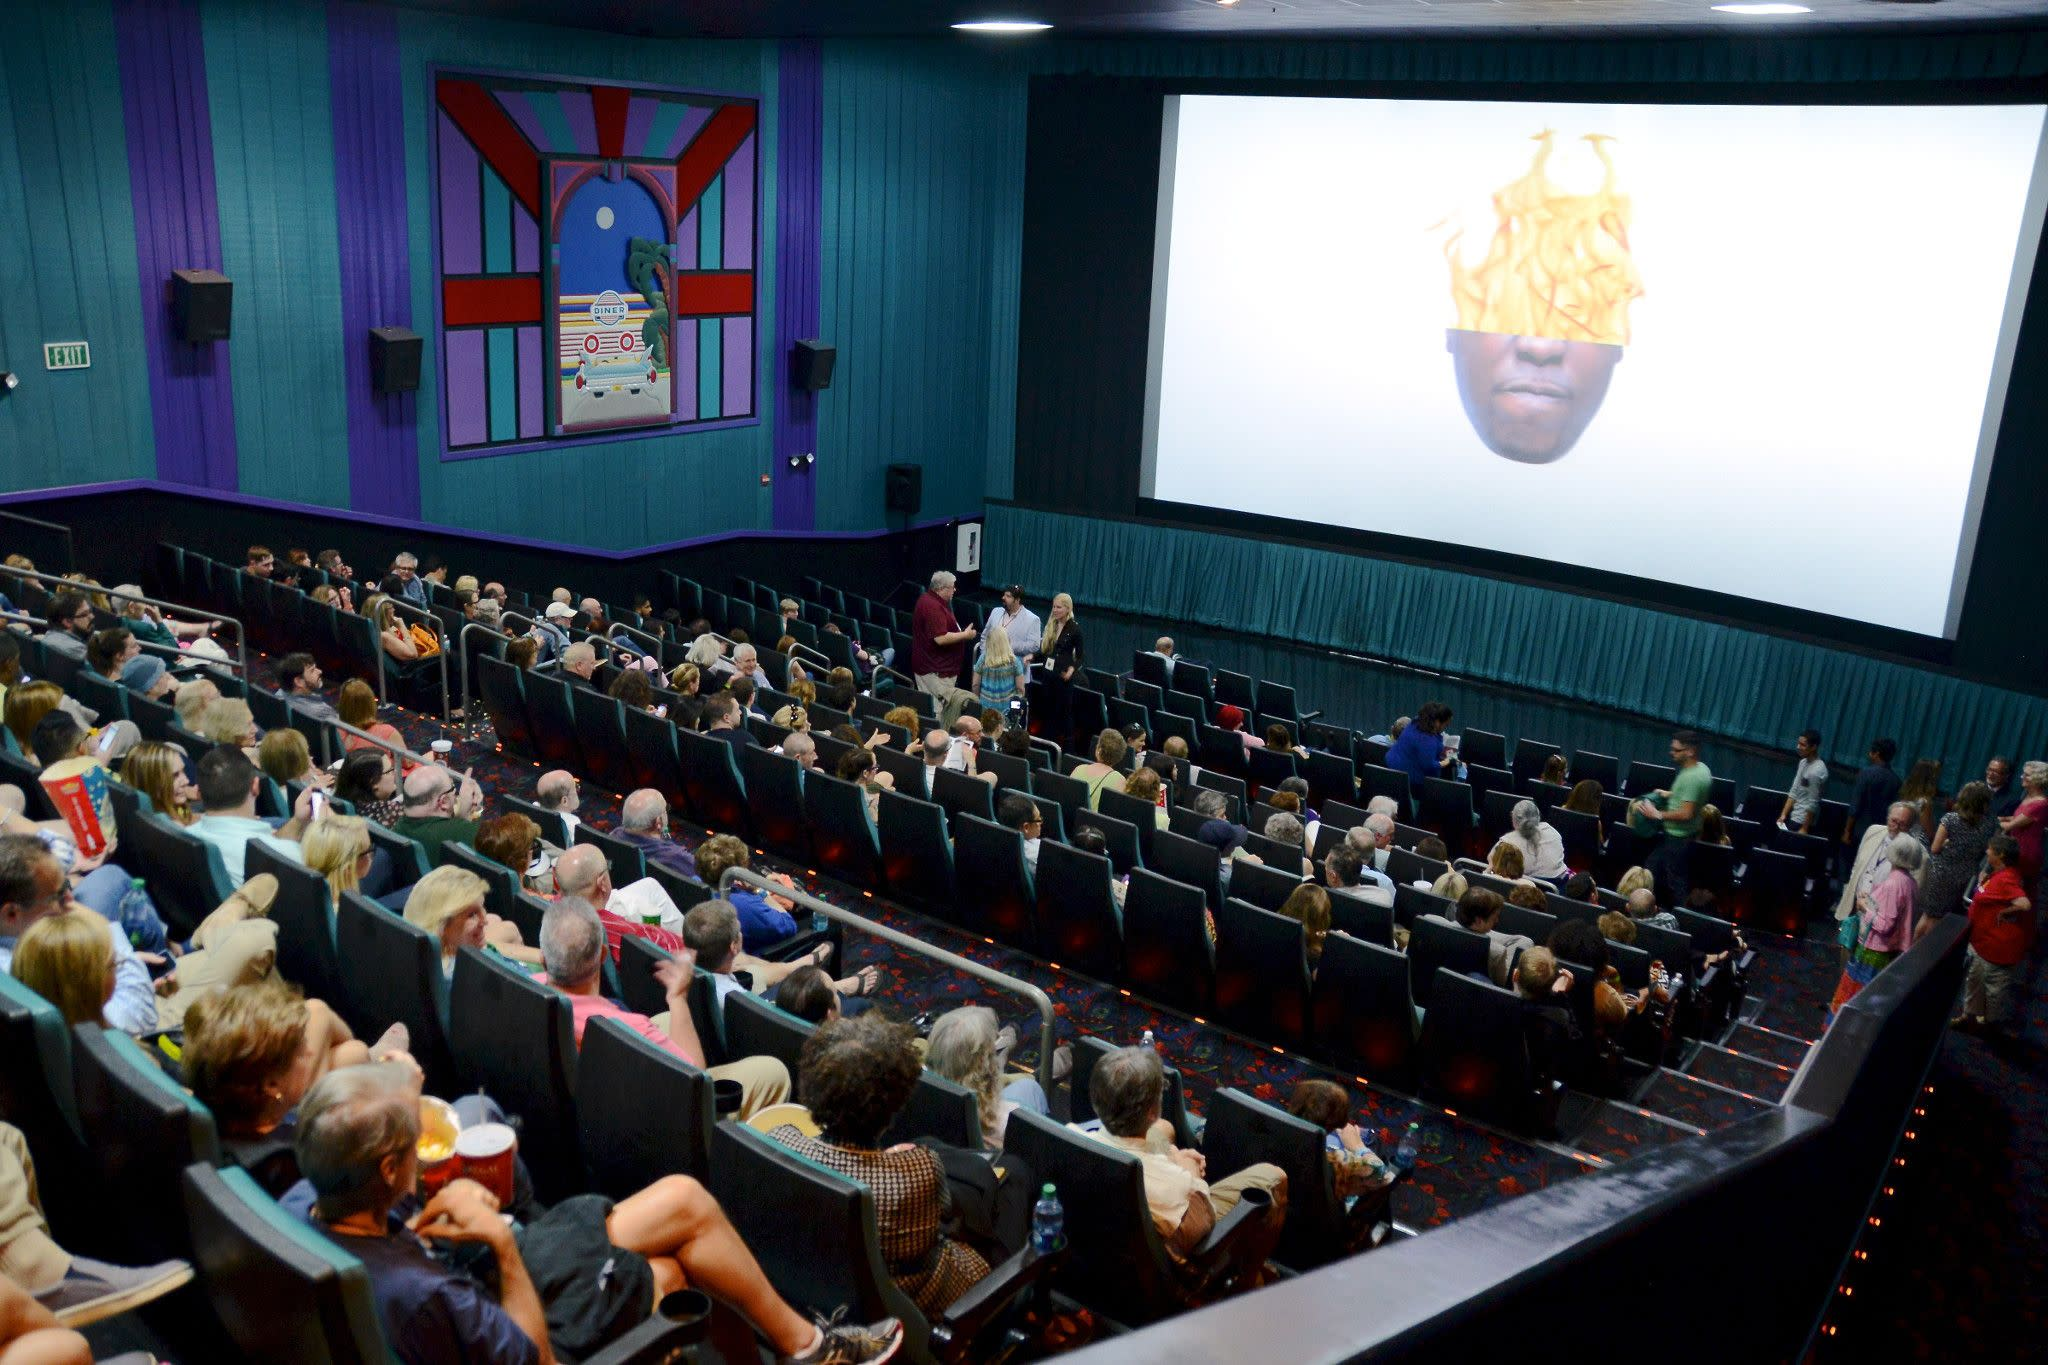 The 2019 Florida Film Festival Will Screen More Than 180 Movies